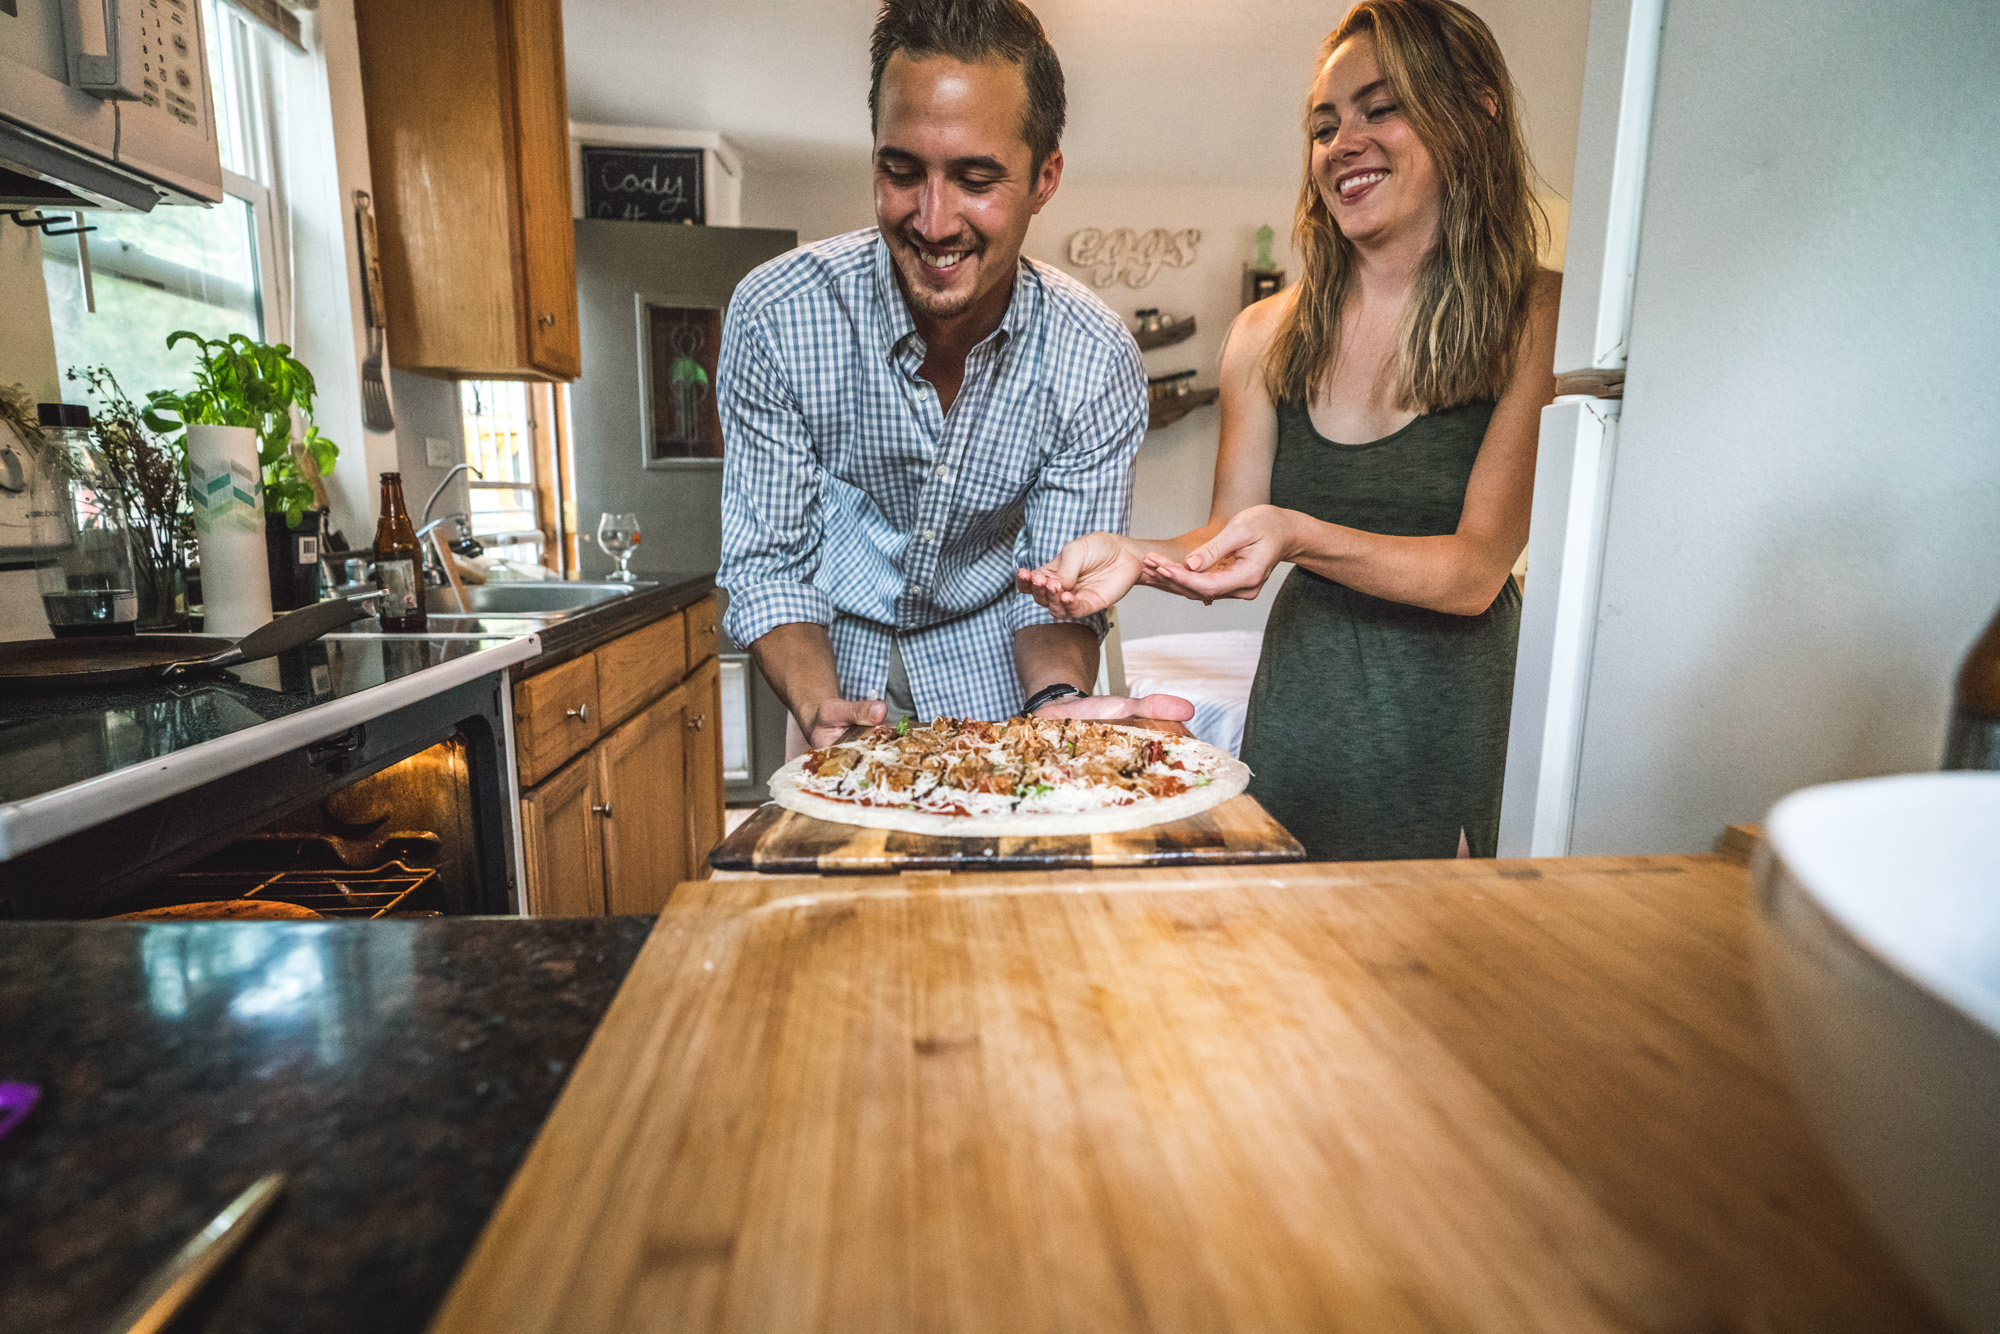 Engagement photo of a man and woman in their kitchen getting ready to put a pizza in the oven